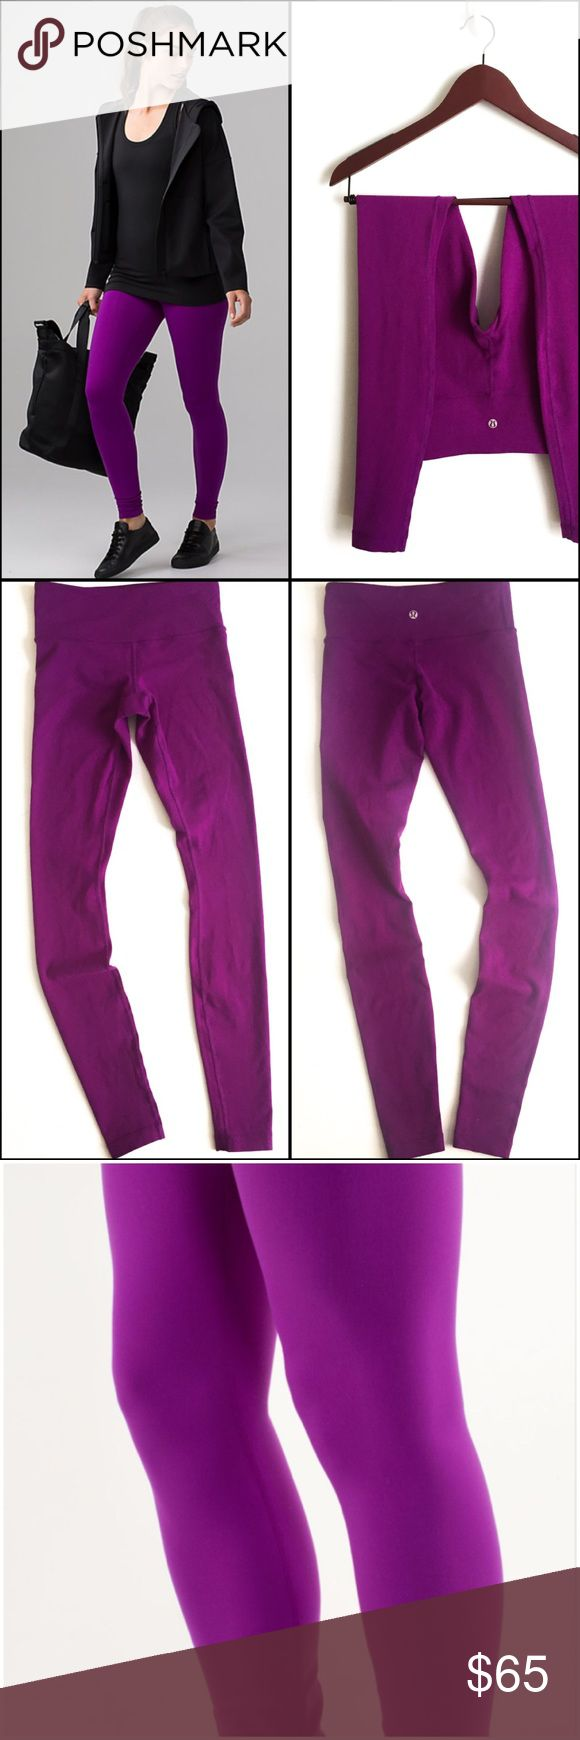 "Lululemon Wunder Under Pant ▫️Perfect for yoga, gym, to-and-from  ▫️Fabric: Luon ▫️Properties: four-way stretch, moisture-wicking, preshrunk, chafe-resistant, breathable ▫️Rise: medium ▫️Leg fit: tight  ▫️Inseam: 29"" ▫️Piling throughout pant ▫️Overall Lululemon Pant in Good preowned condition lululemon athletica Pants"